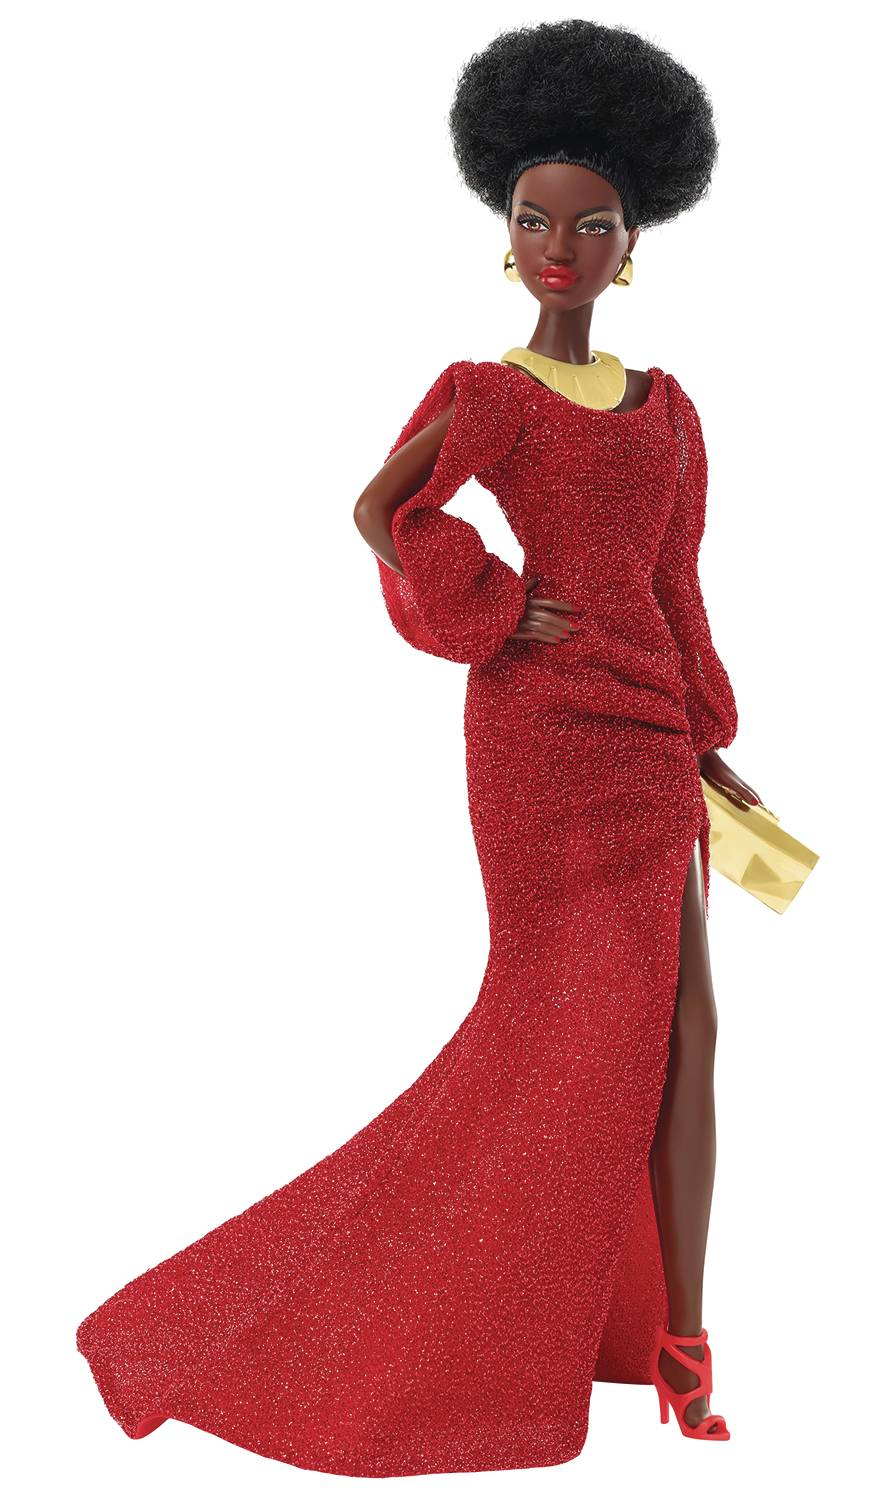 BARBIE 40TH ANNIVERSARY 1ST BLACK BARBIE DOLL